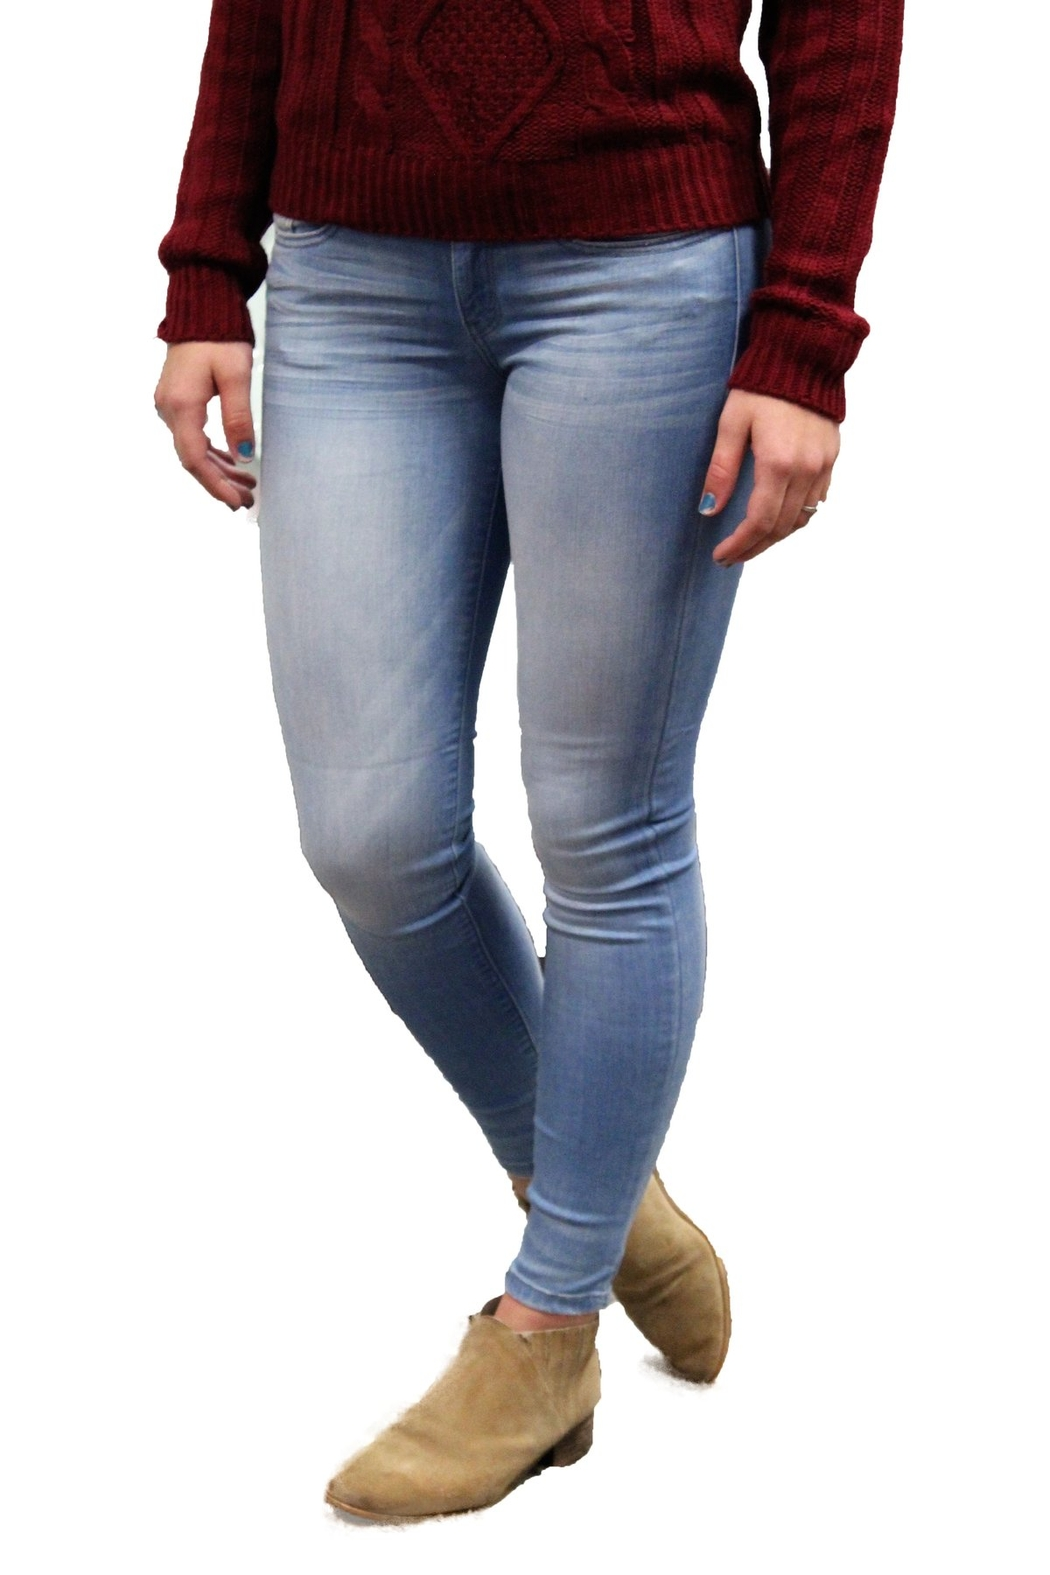 Judy Blue Mid Rise Stretch Light Wash Jeans - Main Image